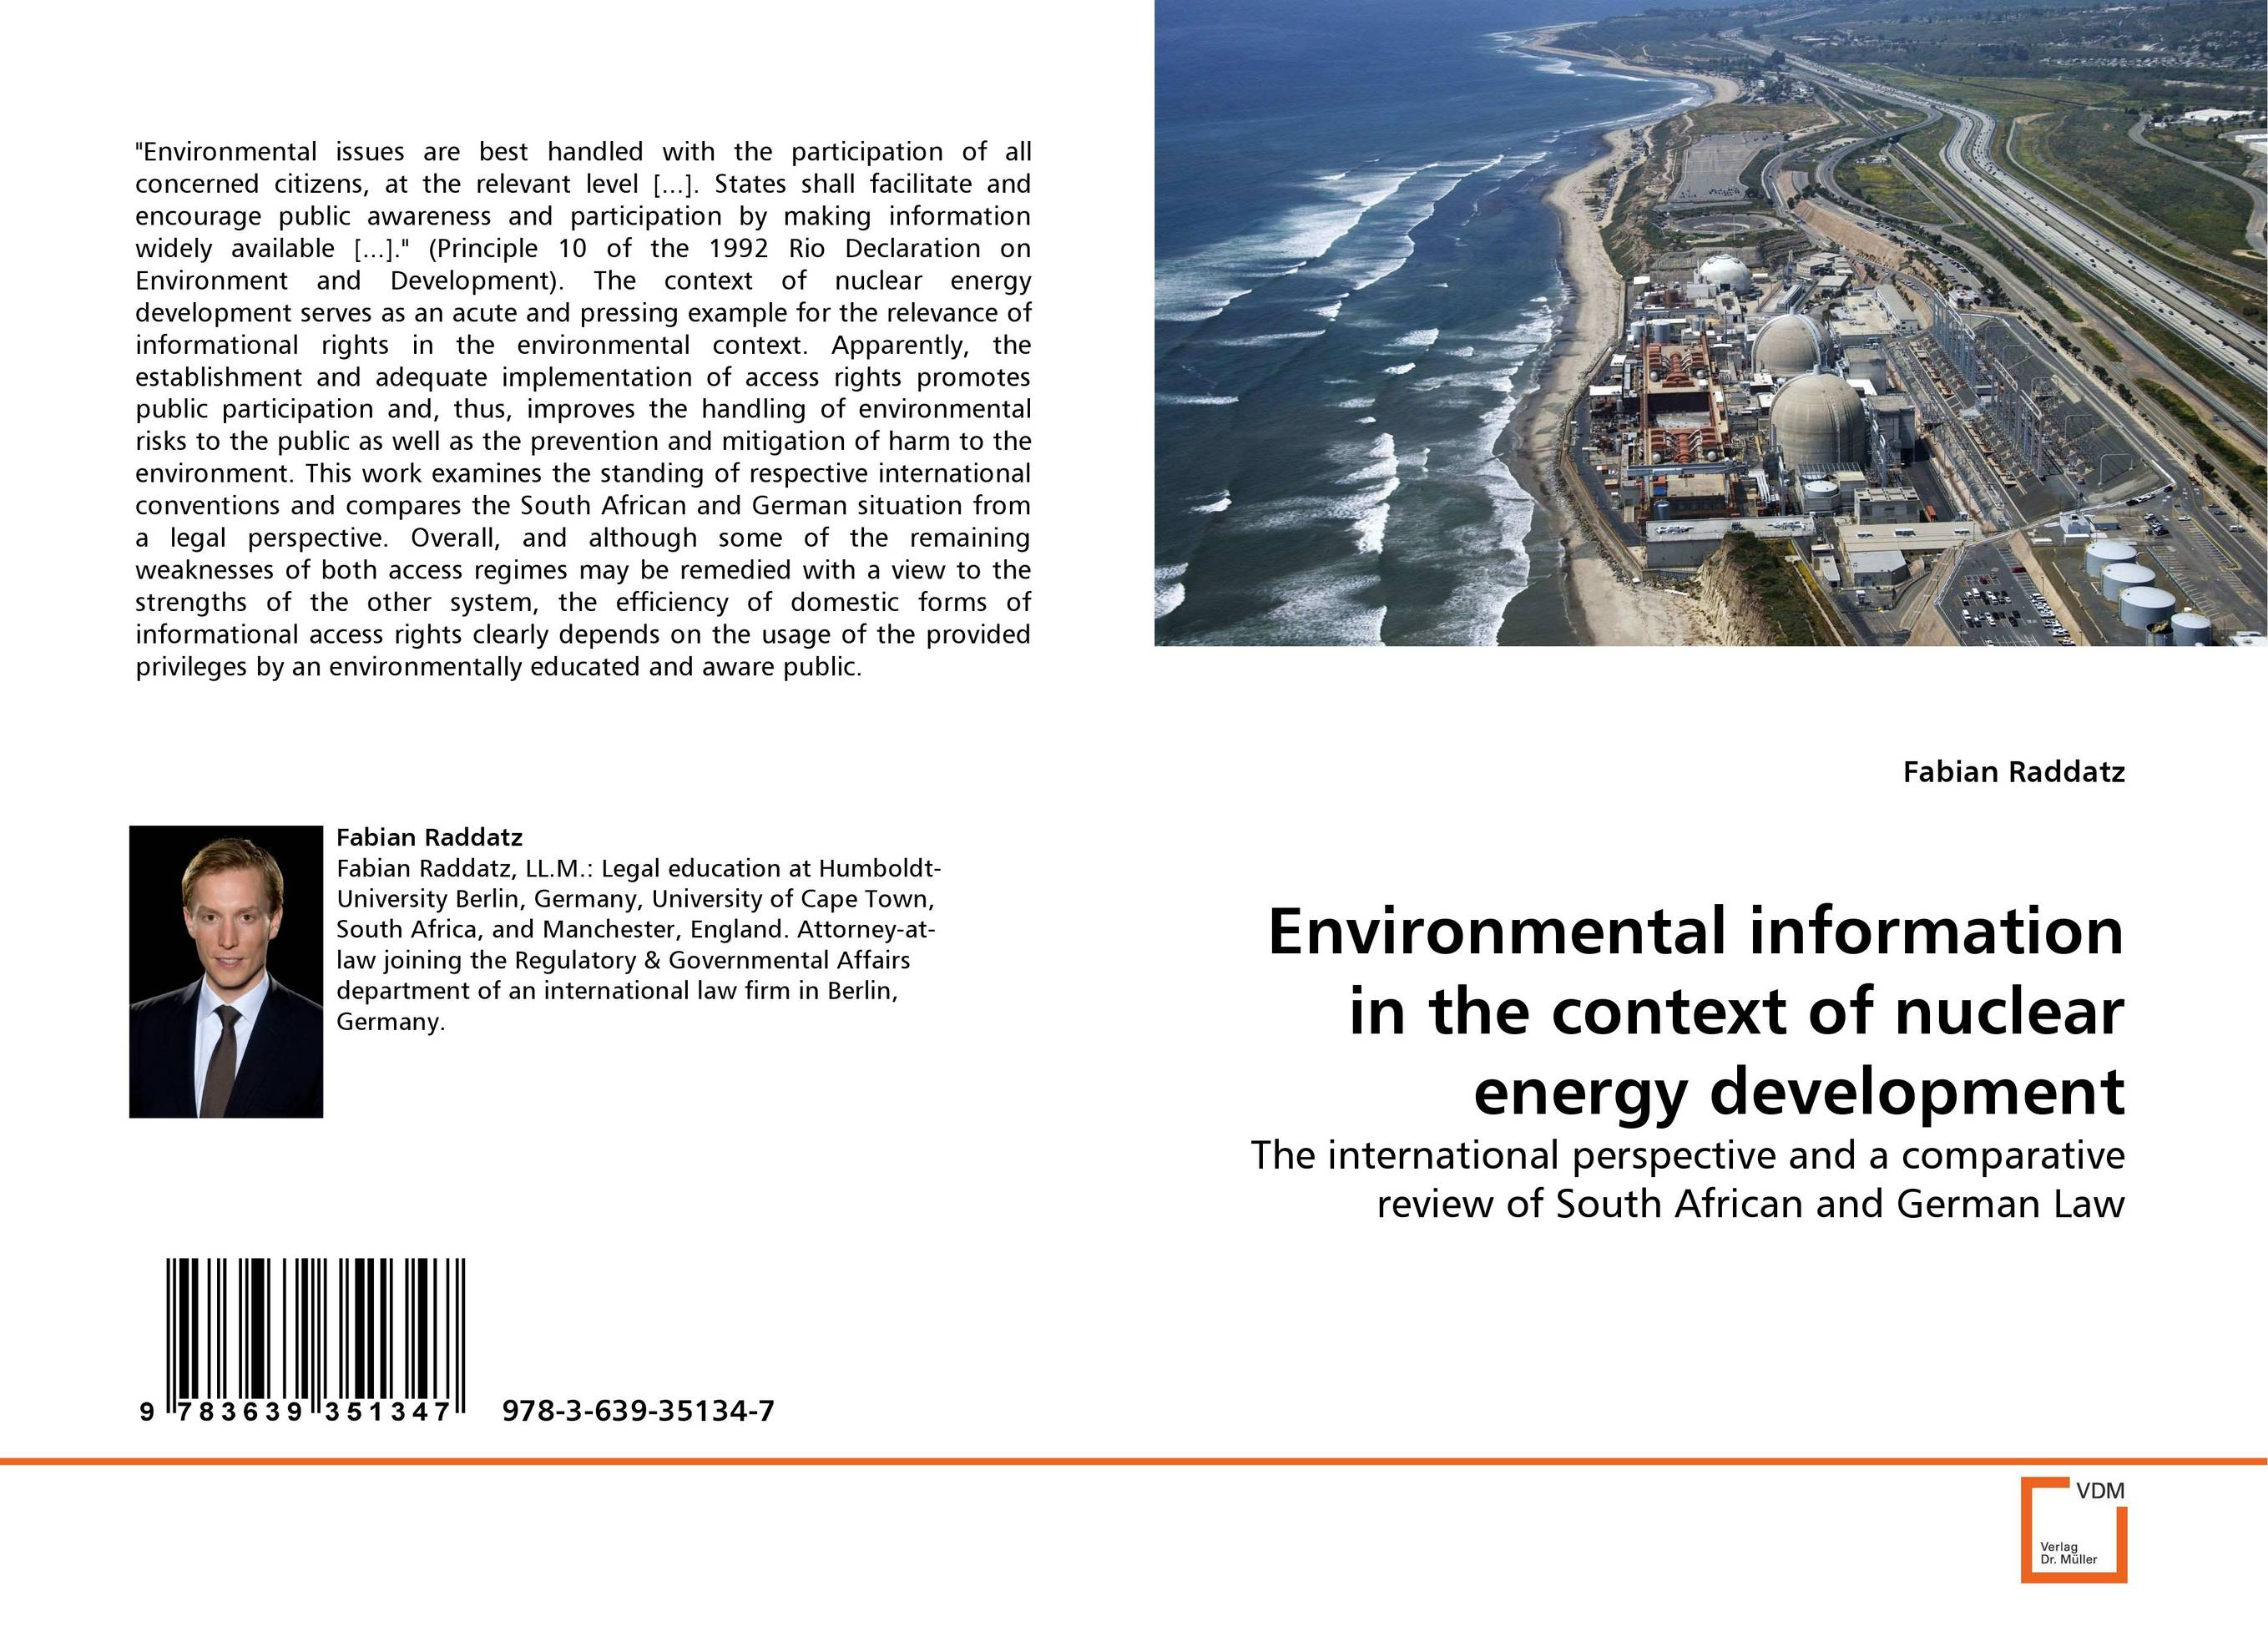 Environmental information in the context of nuclear energy development the public participation in the selection of justice in indonesia